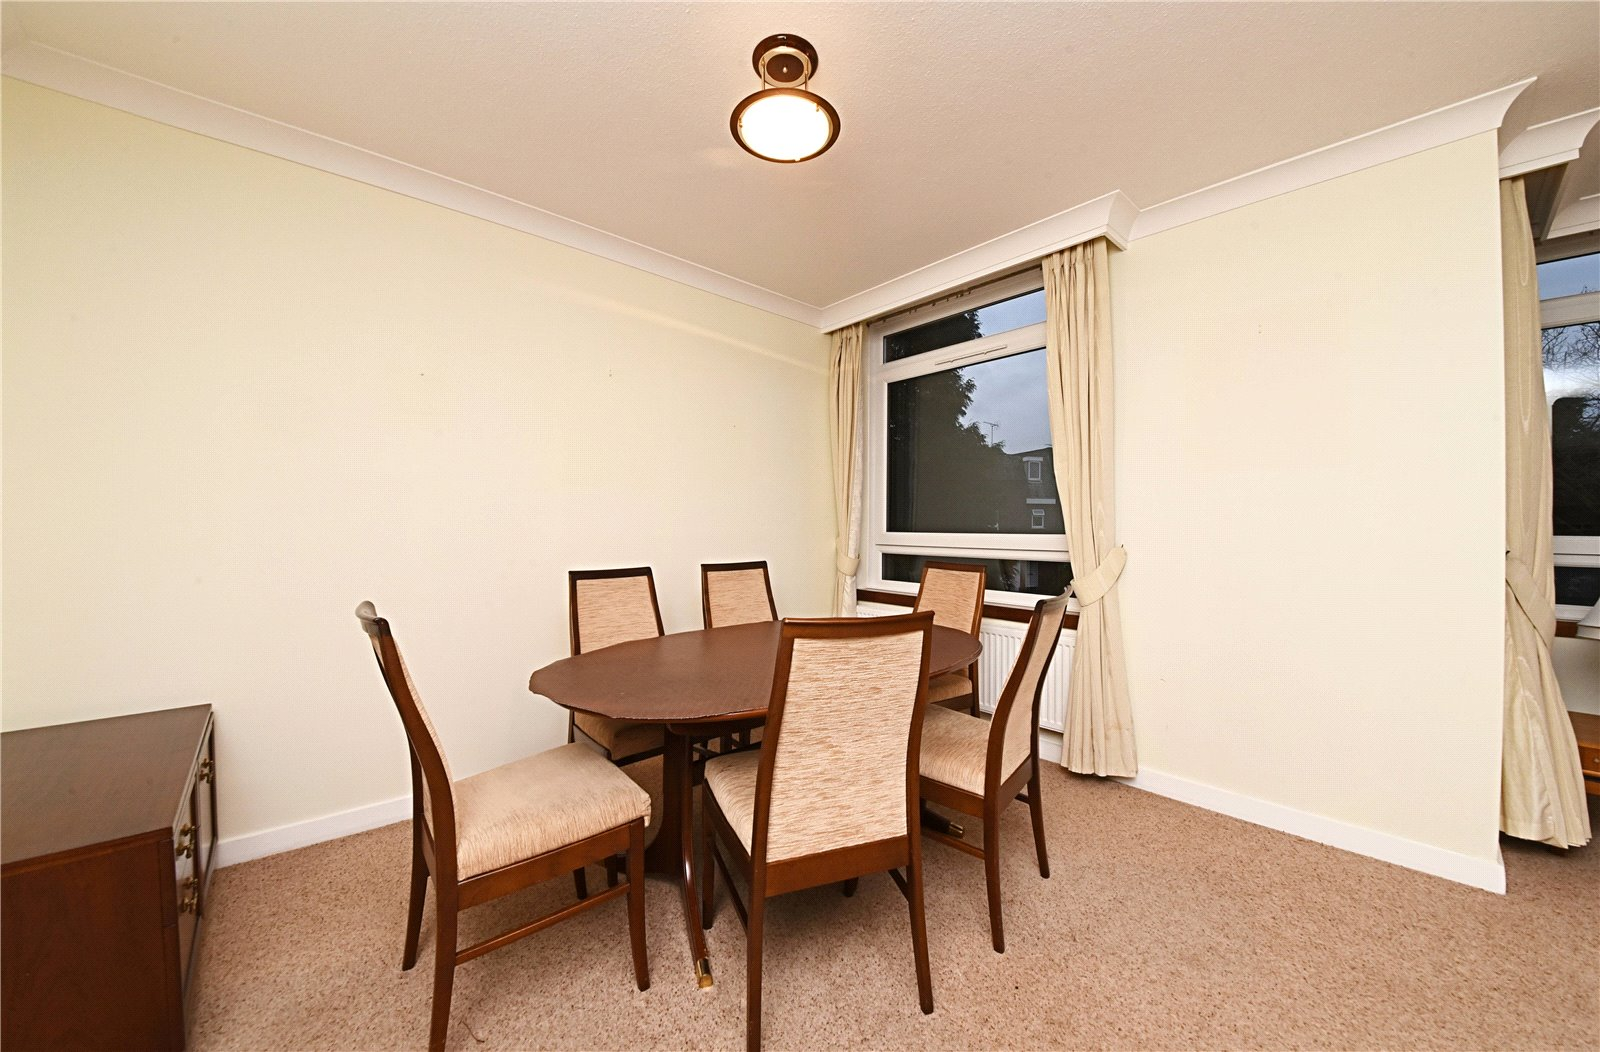 2 bed apartment for sale in Hendon, NW4 1RB 6